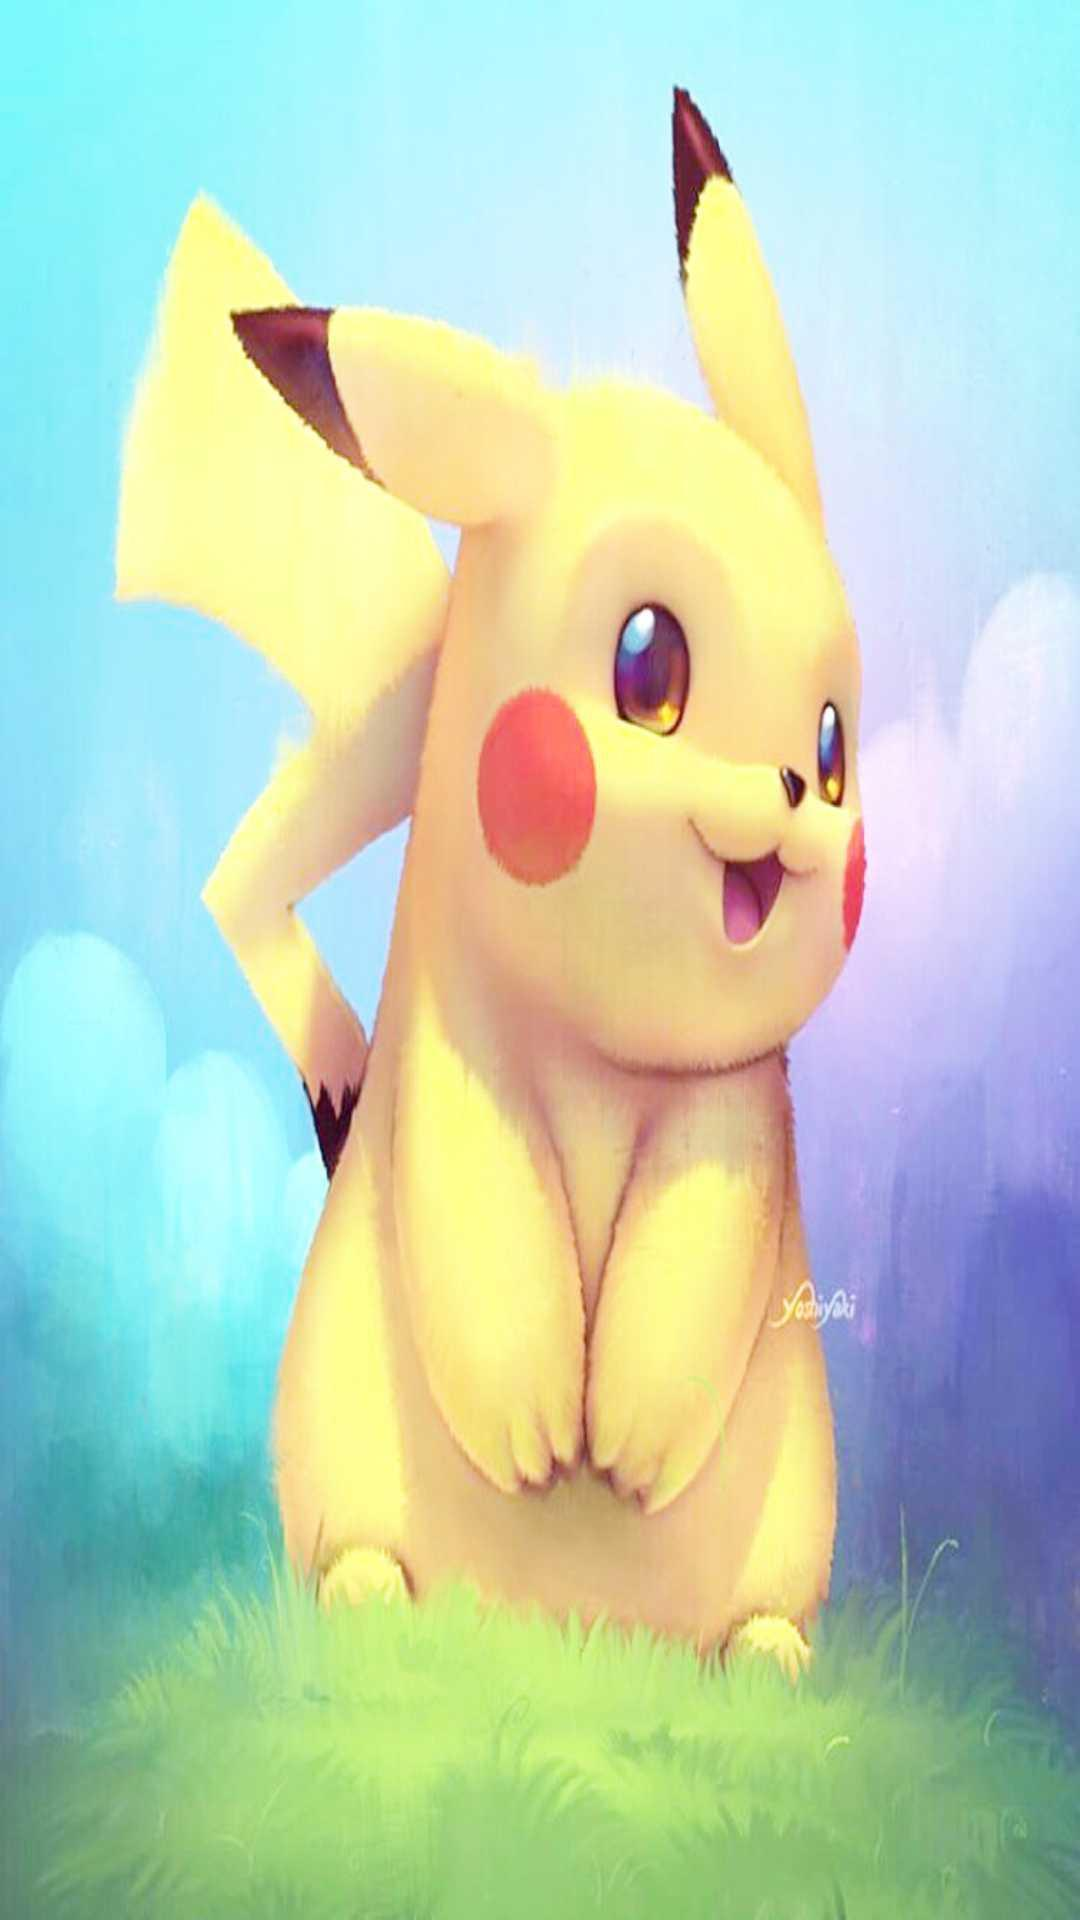 Pikachu Friends Wallpaper Cartoon Full Hd For Android Apk Download